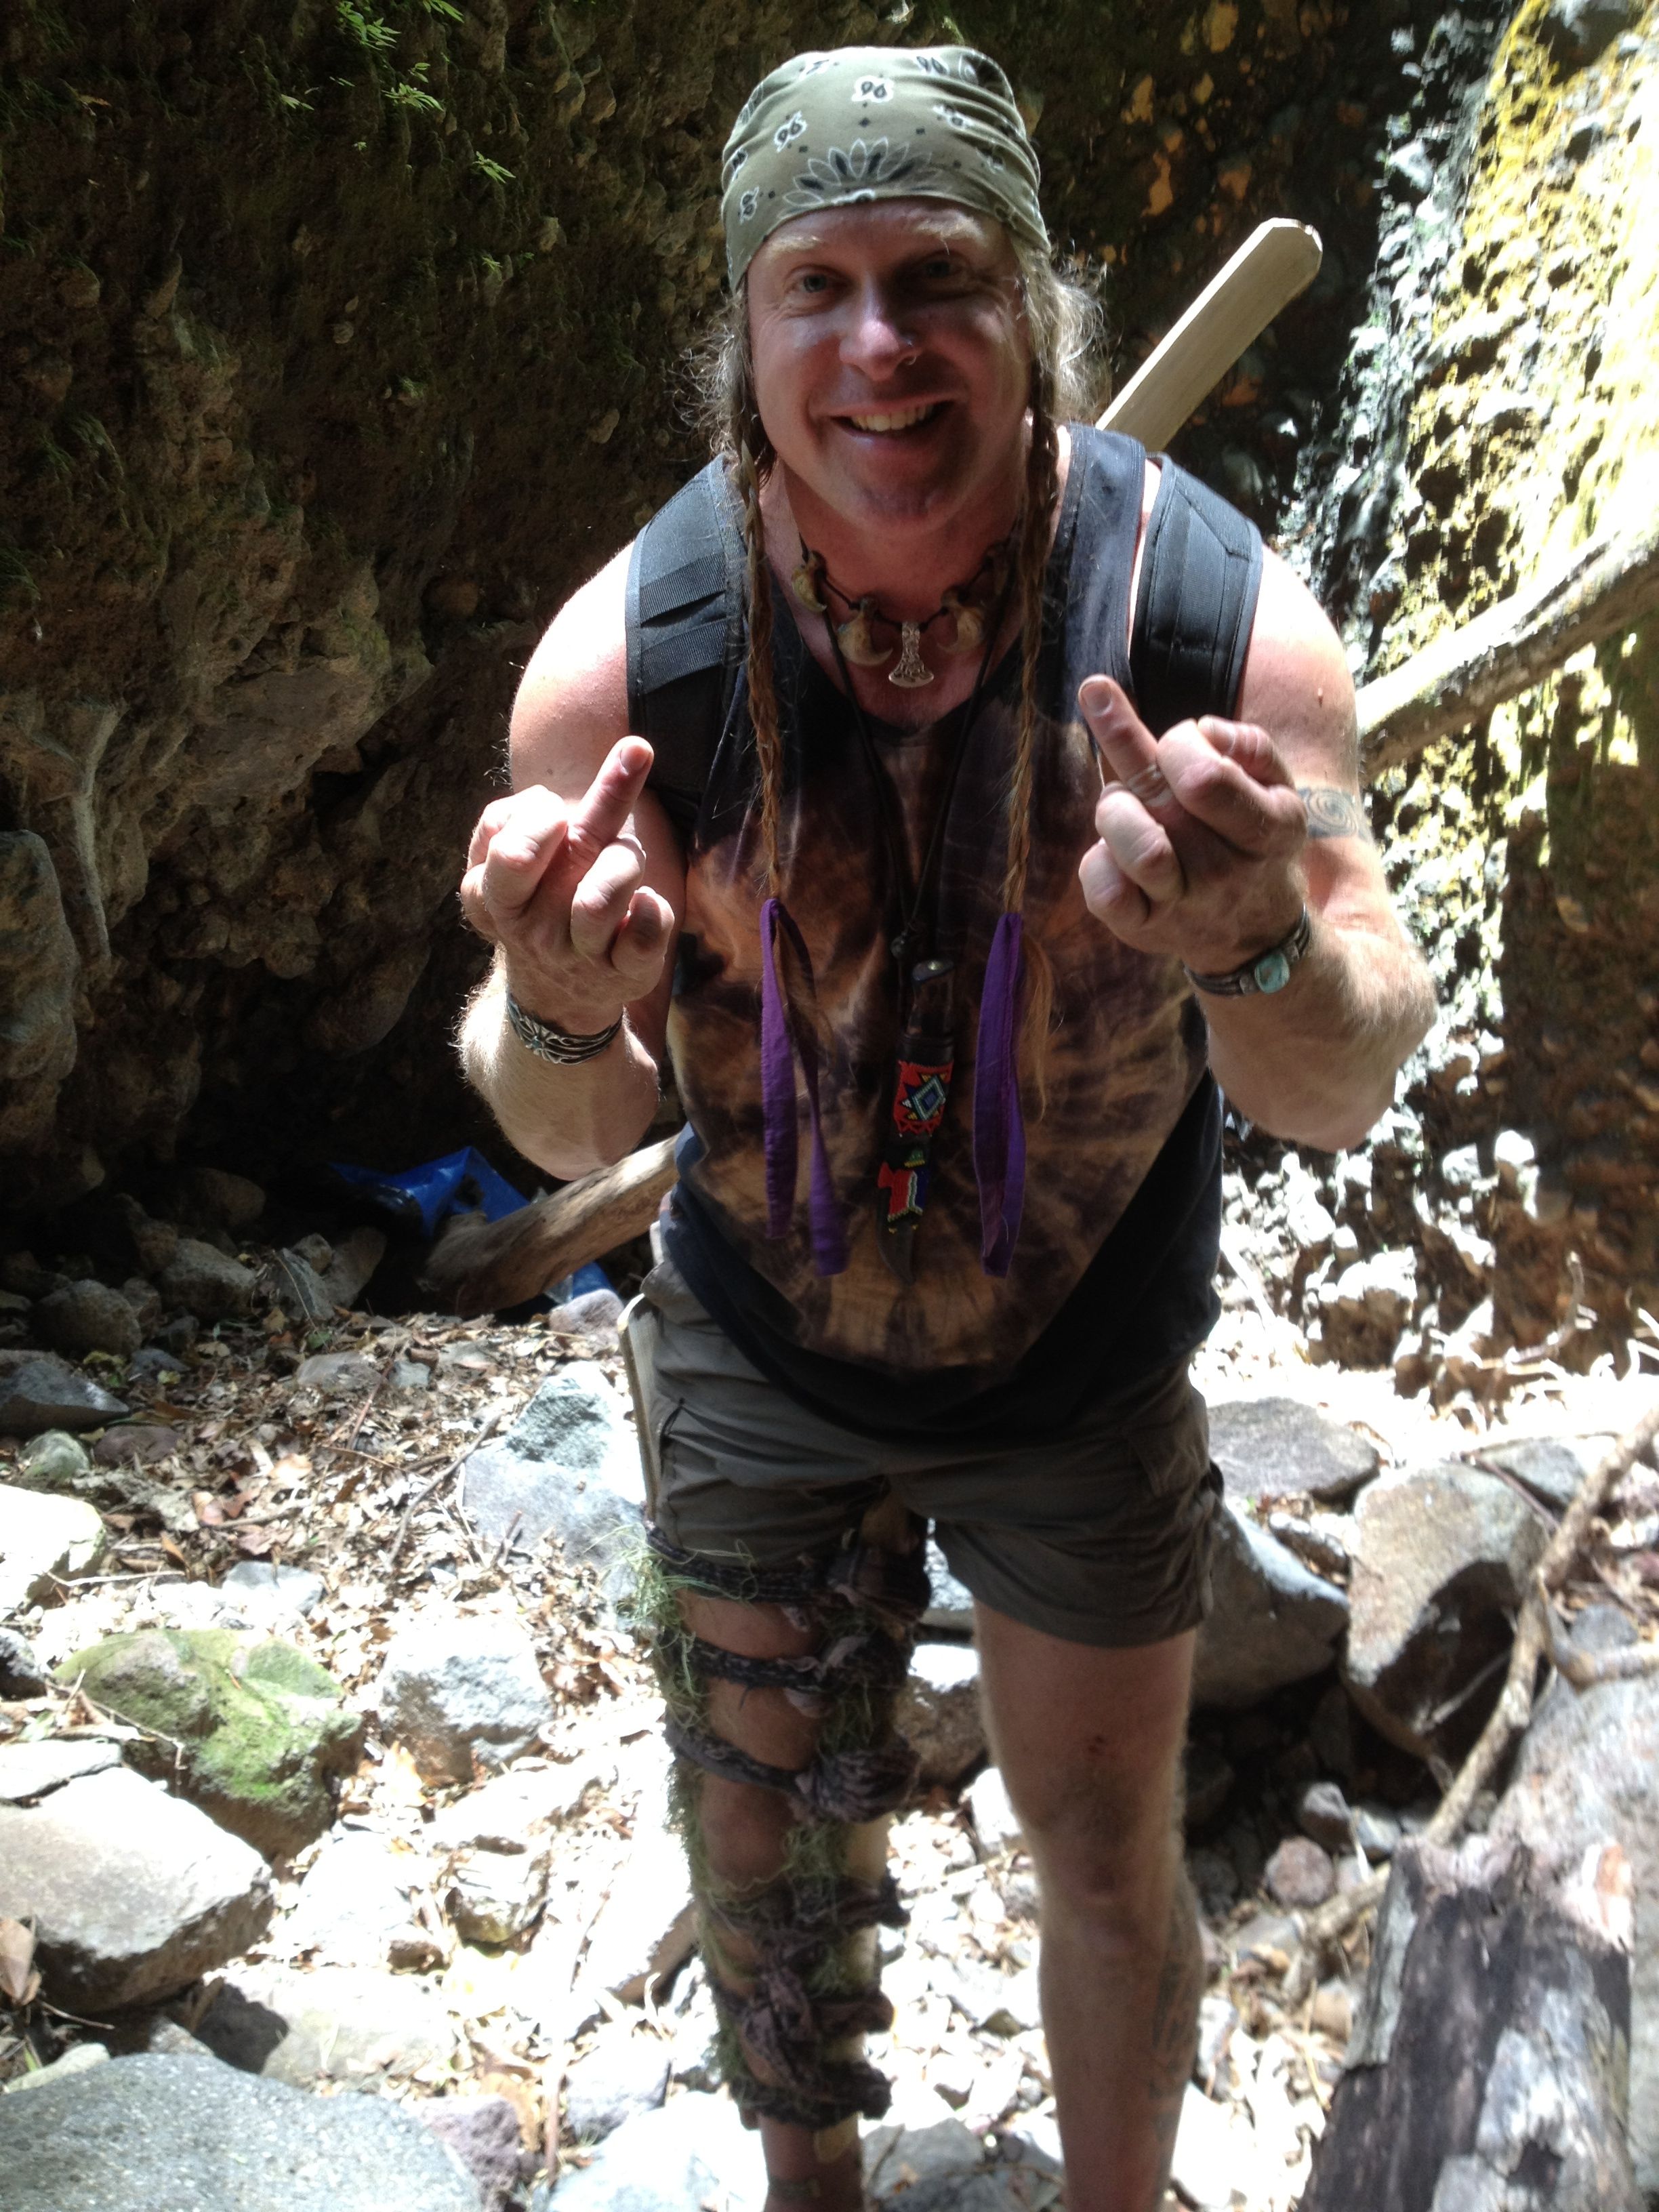 During downtime Cody Lundin poses for a photo.  Photo taken by Will Kaufman on location of Dual Survival Season 3.